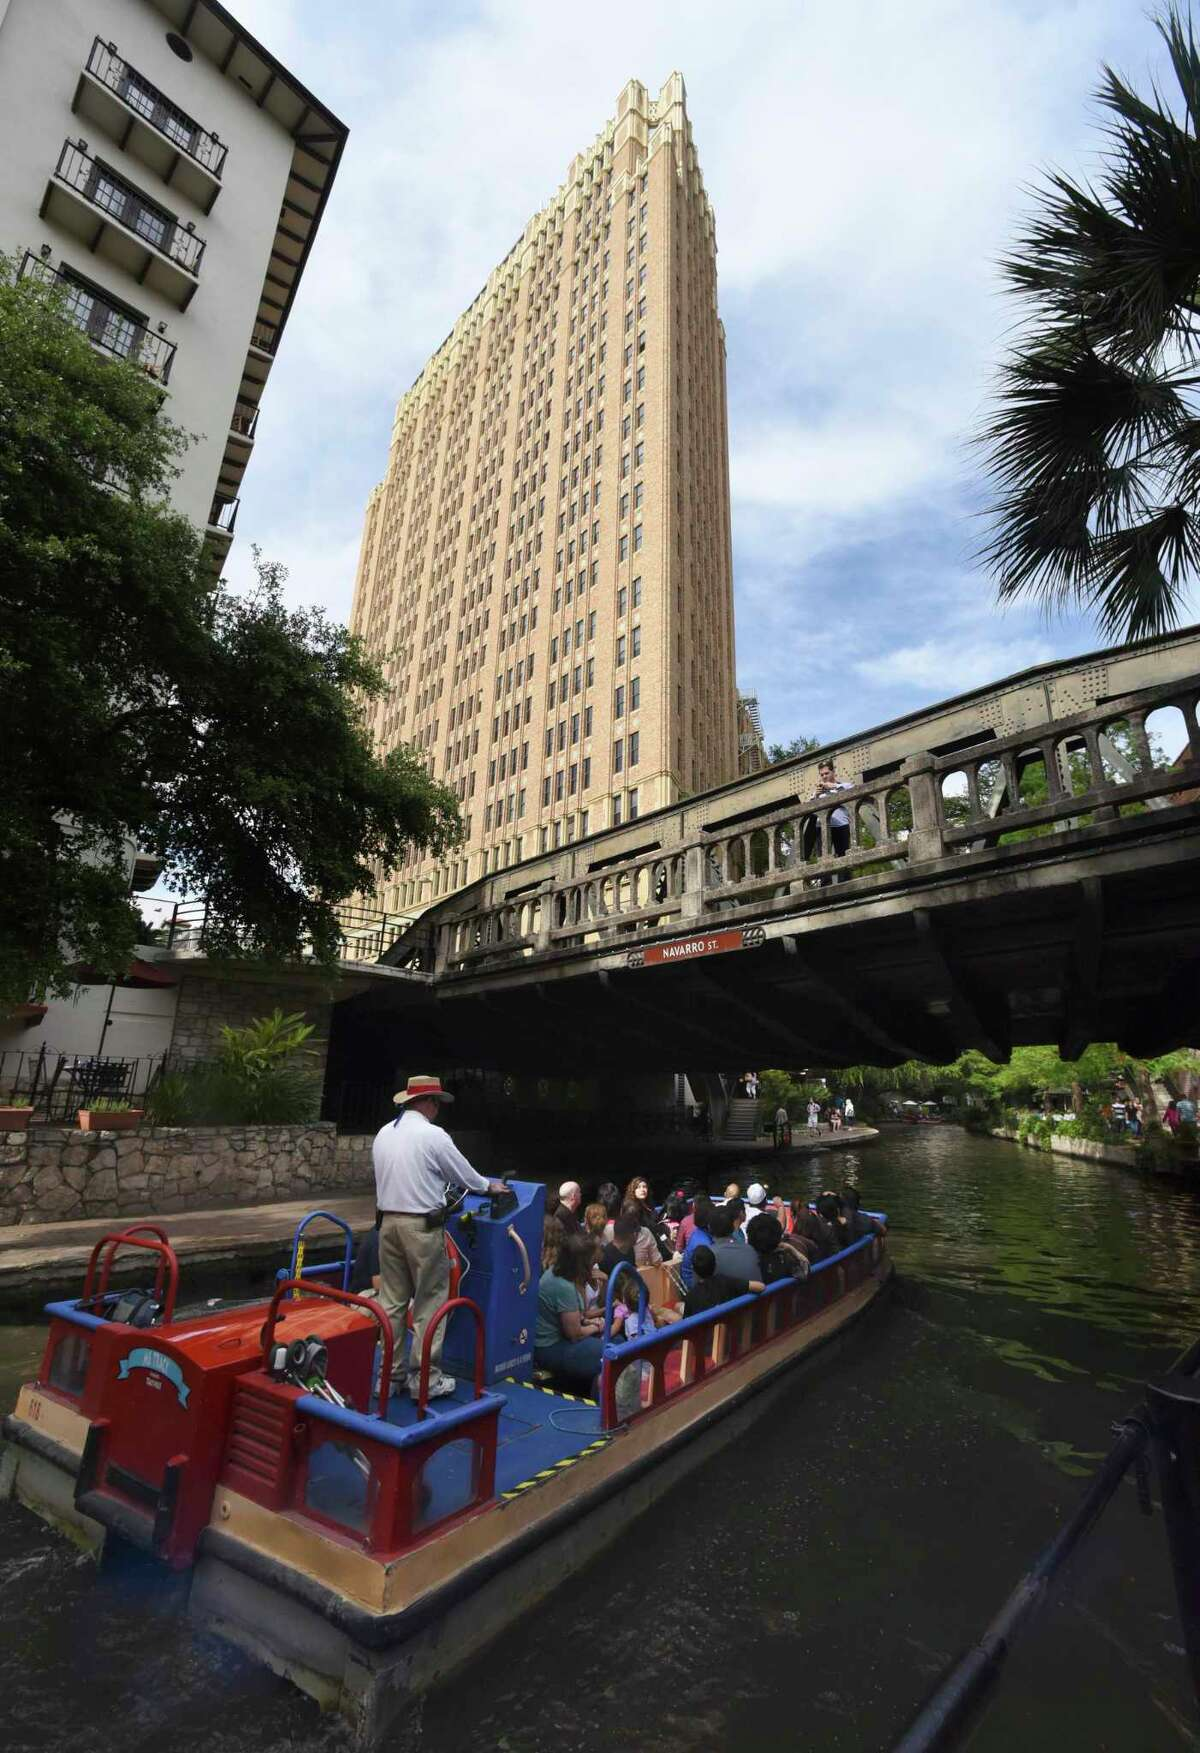 Nix Medical Center looms over a barge on the San Antonio River at the Navarro Street bridge in this 2015 photo.